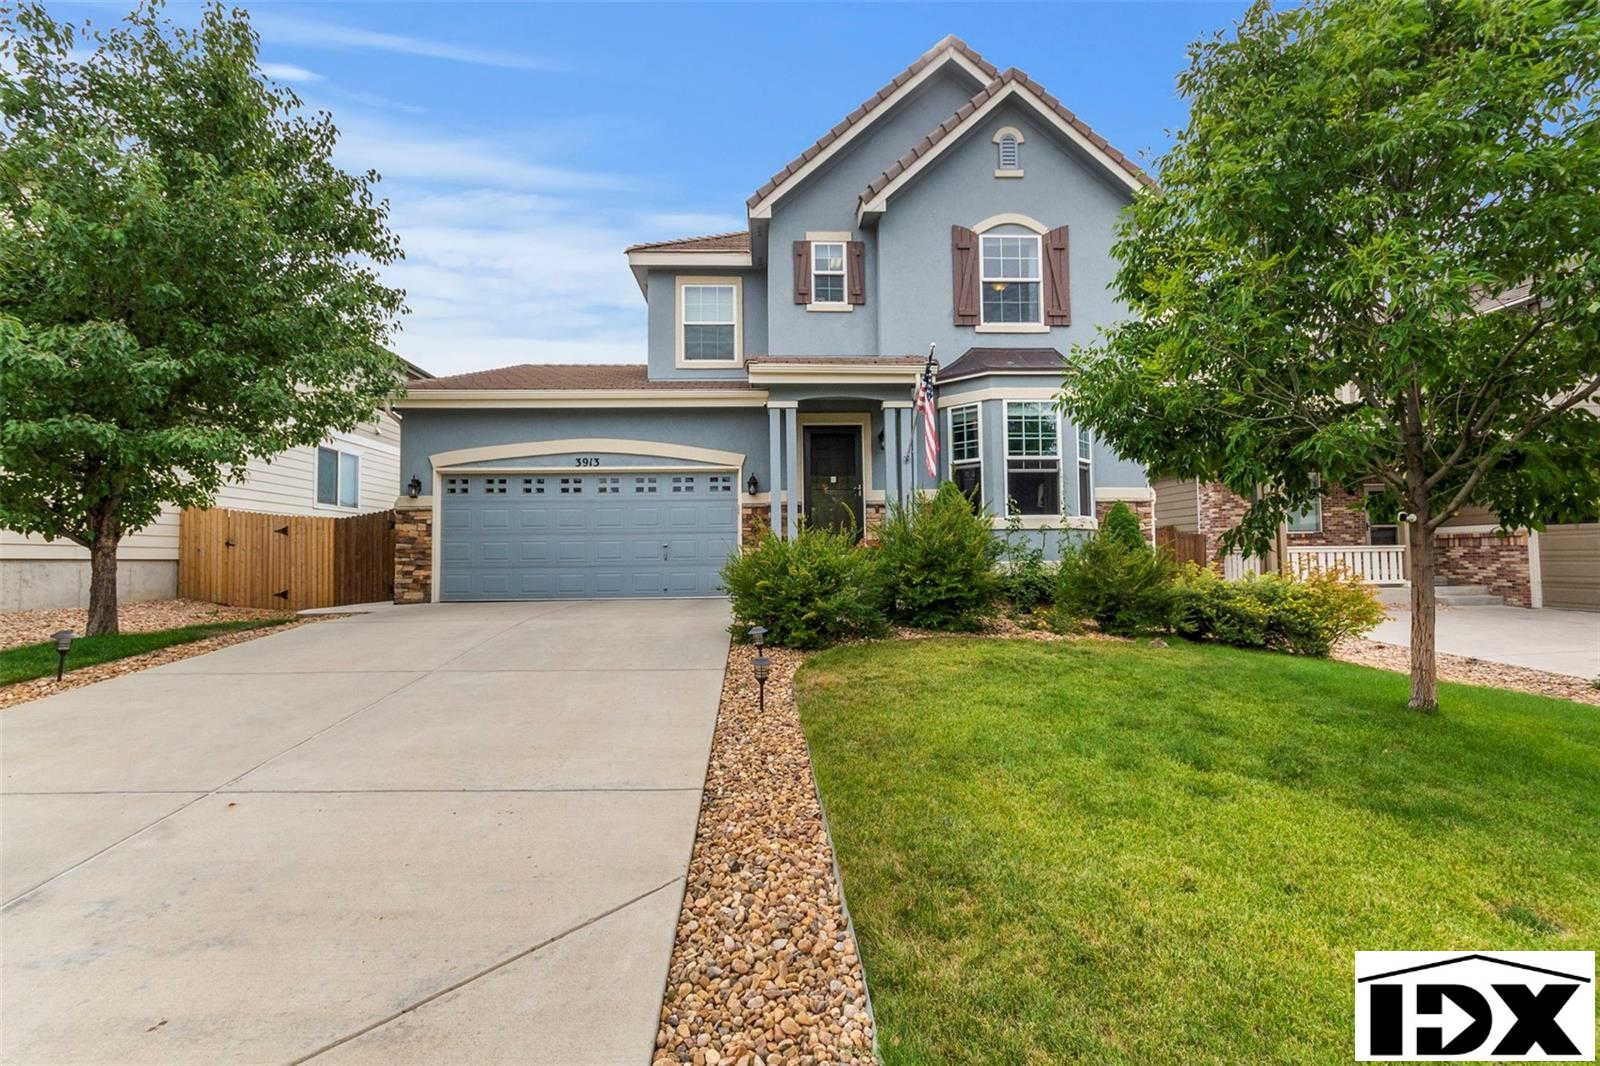 3913 South Shawnee Way, Aurora, CO 80018 now has a new price of $424,900!